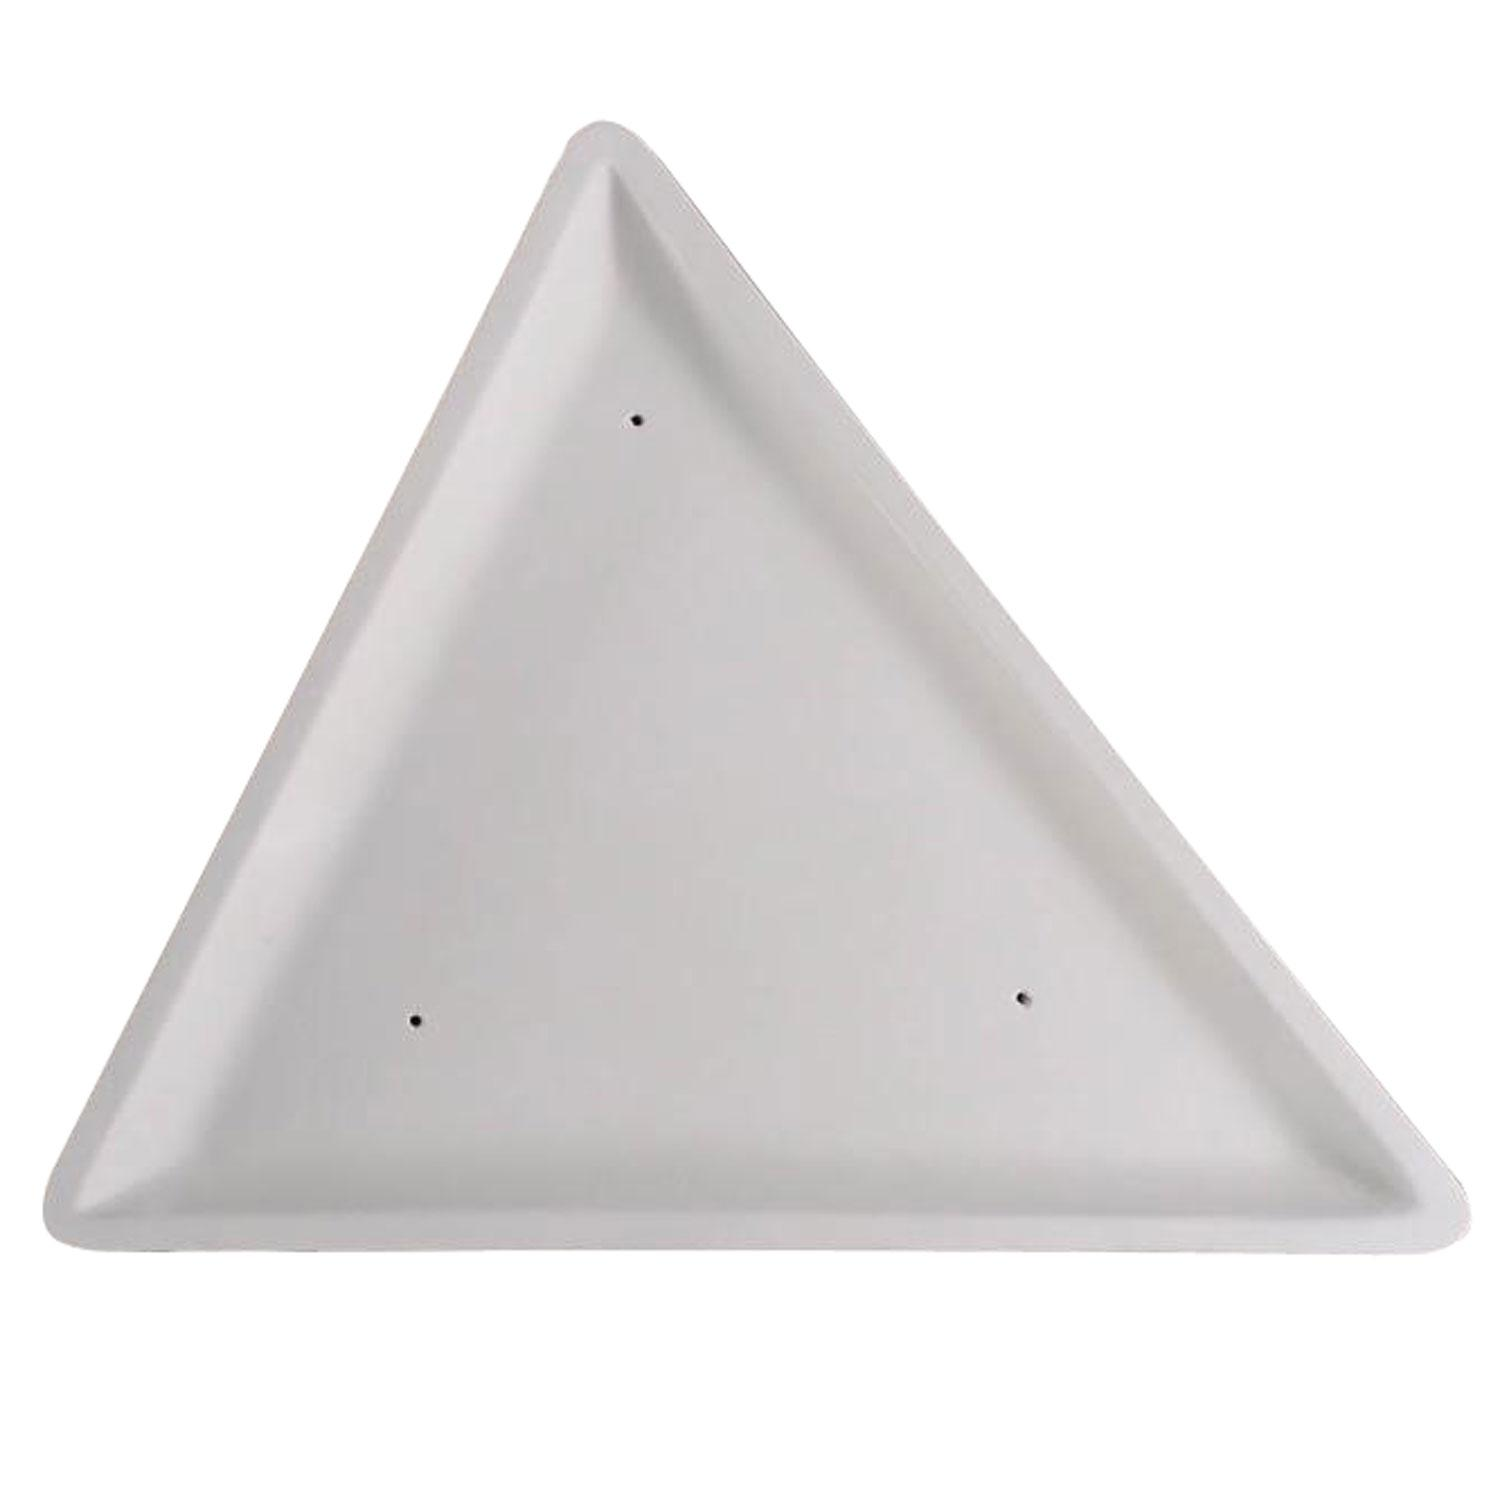 10 x 10 Triangle Stacking Mold